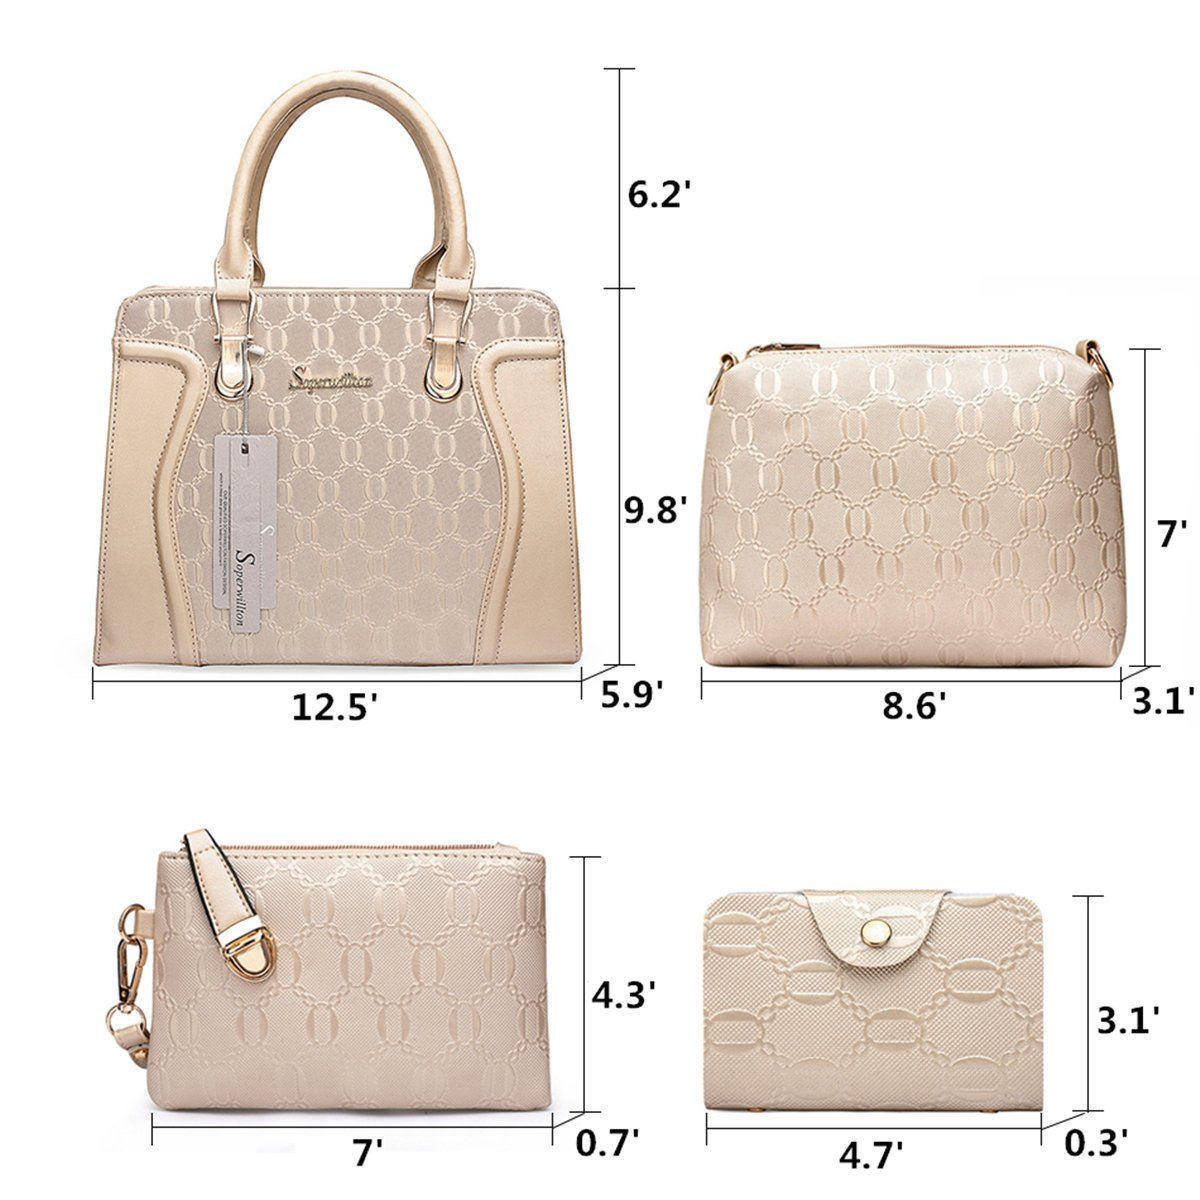 4596ad2eef8b Amazon.com  Soperwillton Handbag for Women Tote Bag Shoulder Bags Satchel  4pcs Purse Set  Shoes